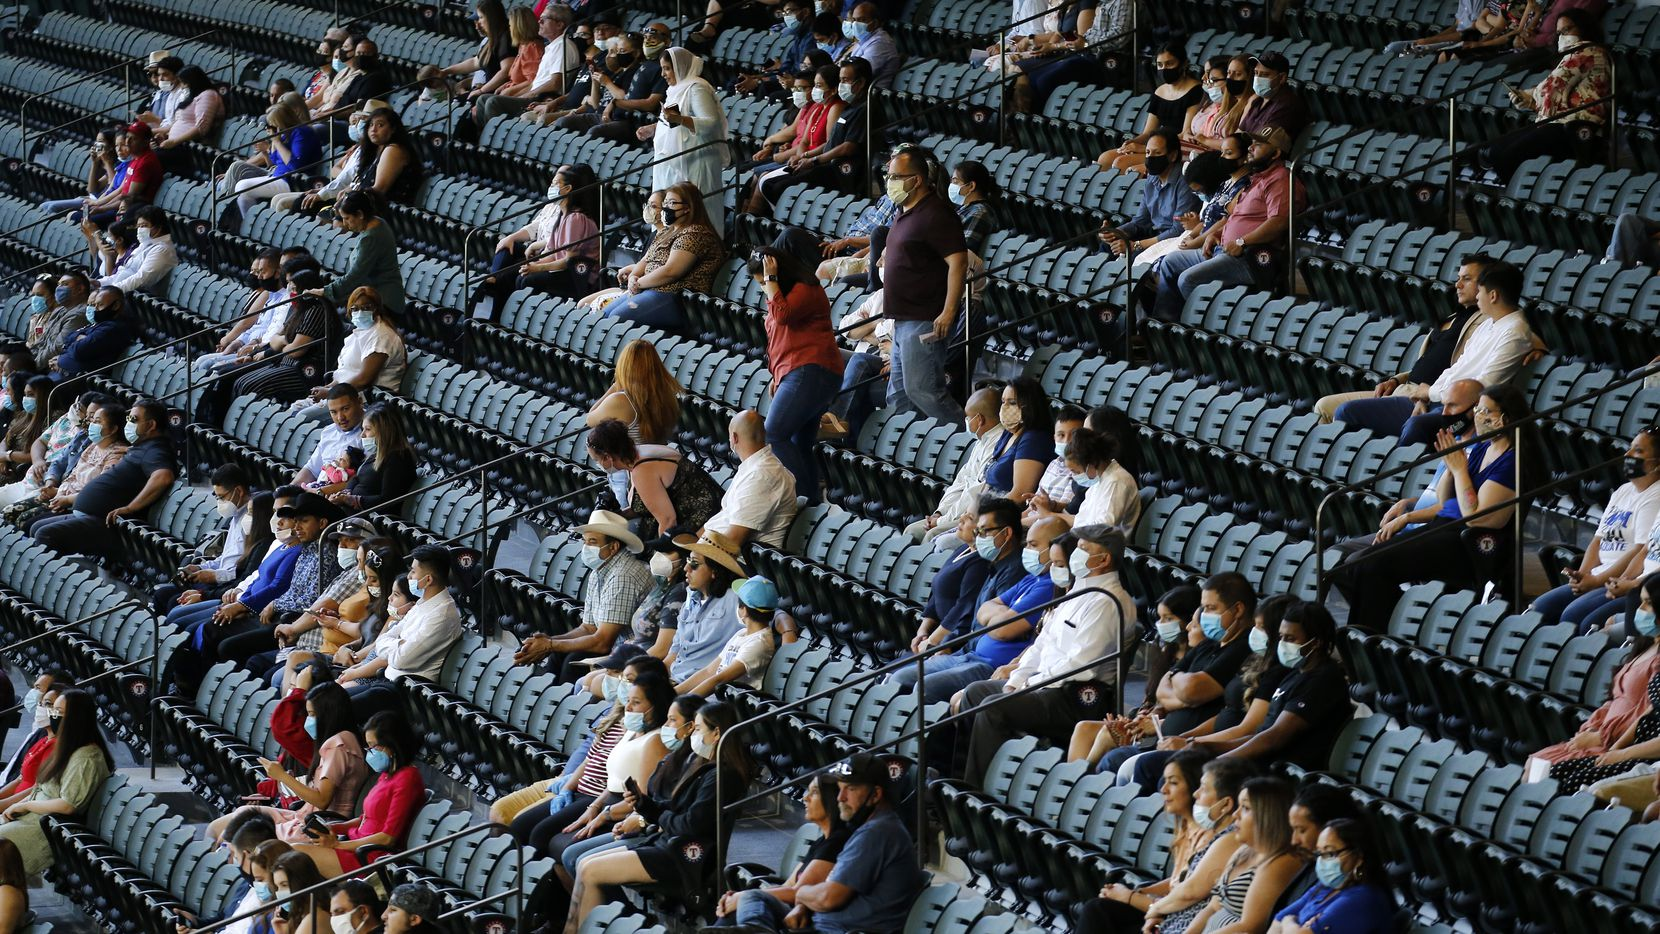 Guests wearing masks were socially distanced in their ticketed seats for Irving's Jack E. Singley Academy commencement at Globe Life Field in Arlington on Friday, May 29 2020. The graduation ceremony is also the first public event held at the newly constructed ballpark. Because of the COVID-19 pandemic, previous events including the start of the Texas Rangers season have been put on hold. Singley Academy is the first of 49 graduations from 18 Independent School Districts in North Texas that will take place at Globe Life Field through the end of June. (Tom Fox/The Dallas Morning News)